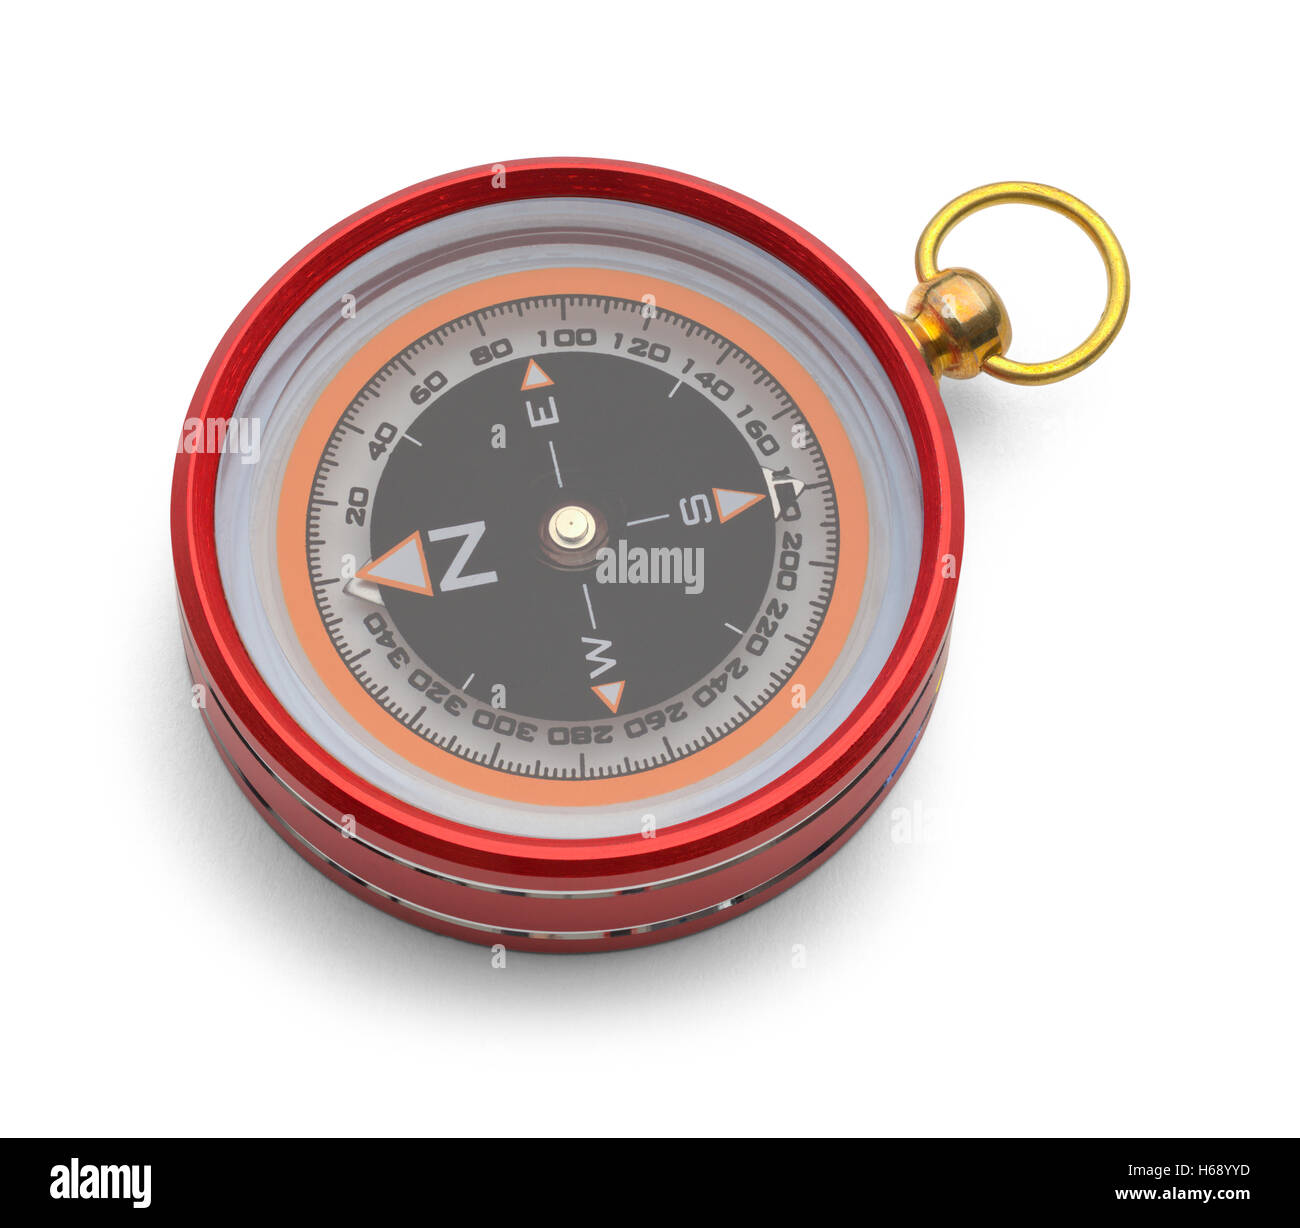 Red Metal Magnetic Compass Isolated on White Background. - Stock Image